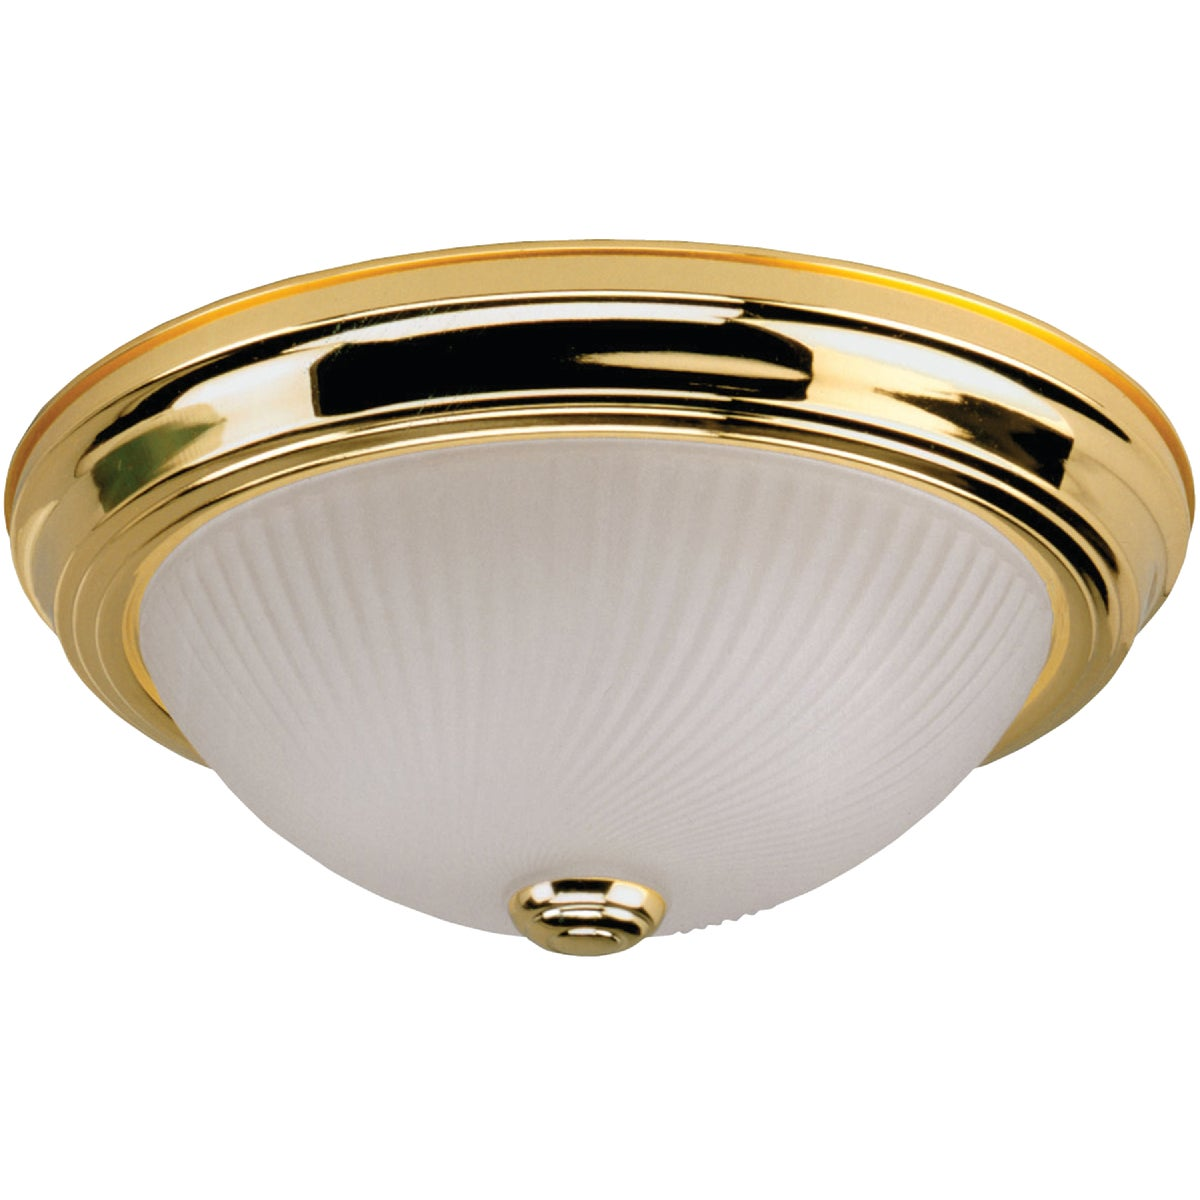 2BULB PB CEILING FIXTURE - IFM211PB by Canarm Gs